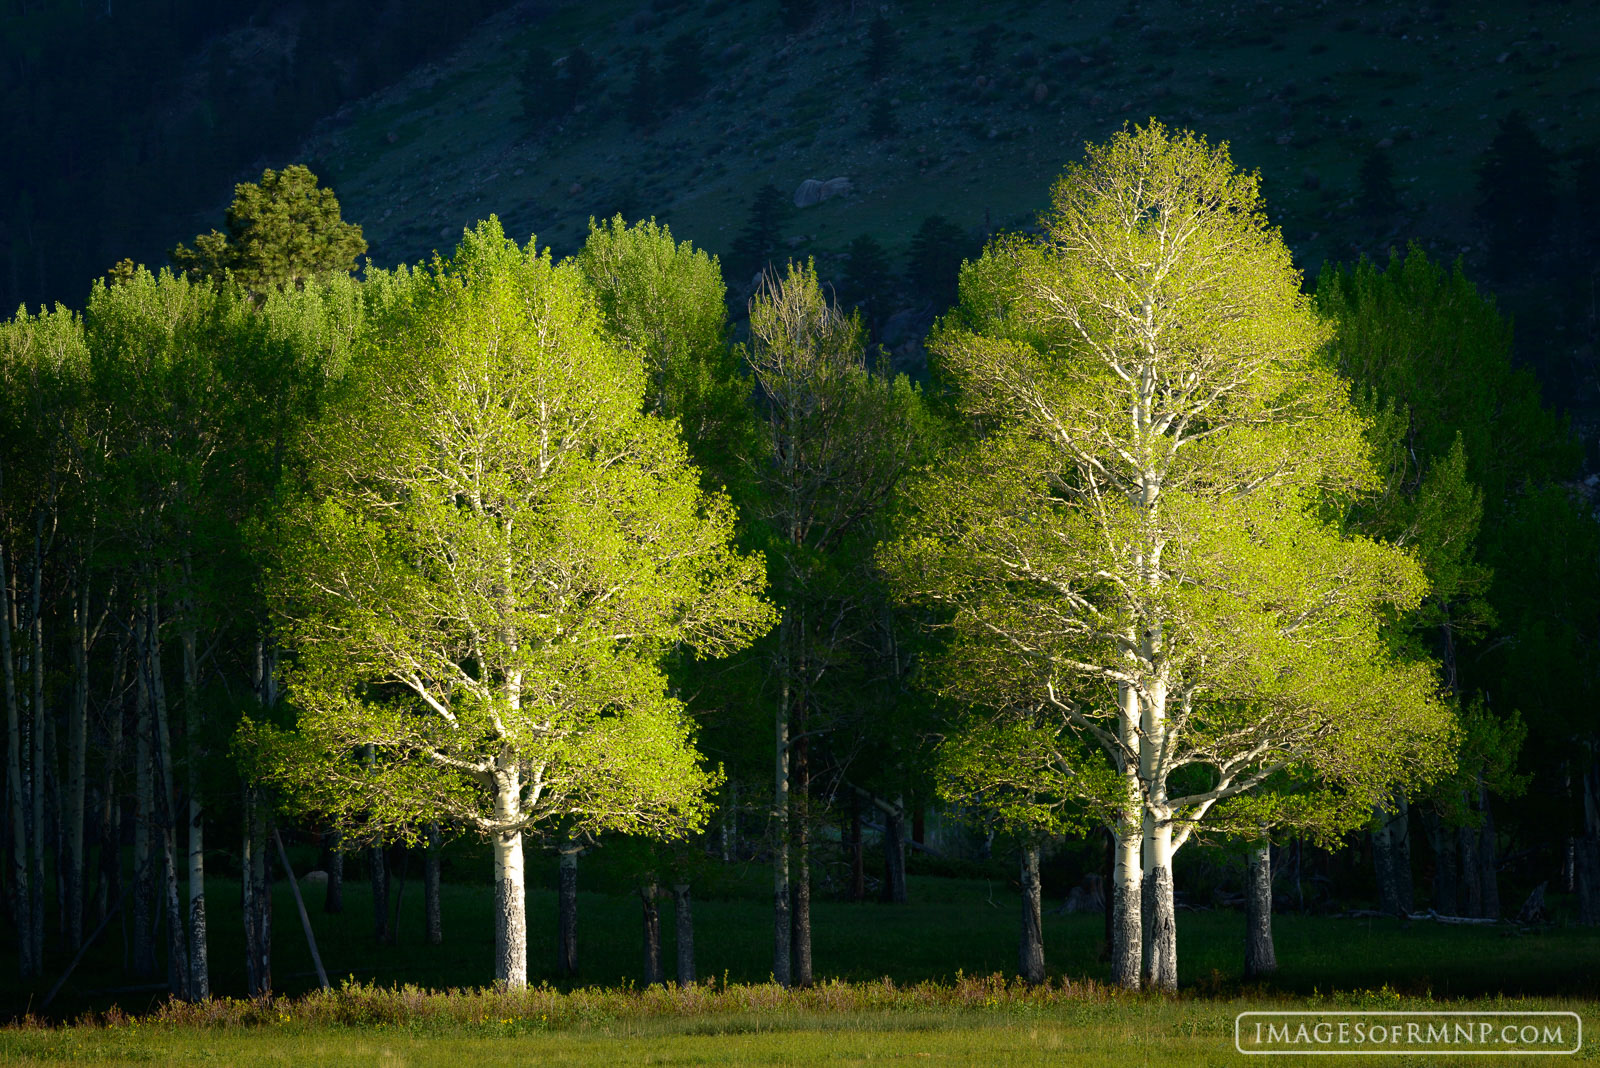 2014, Colorado, USA, america, aspen, green, horseshoe park, june, mysterious, plant, rmnp, rocky, rocky mountain national park, spring, tree, united states of america, photo